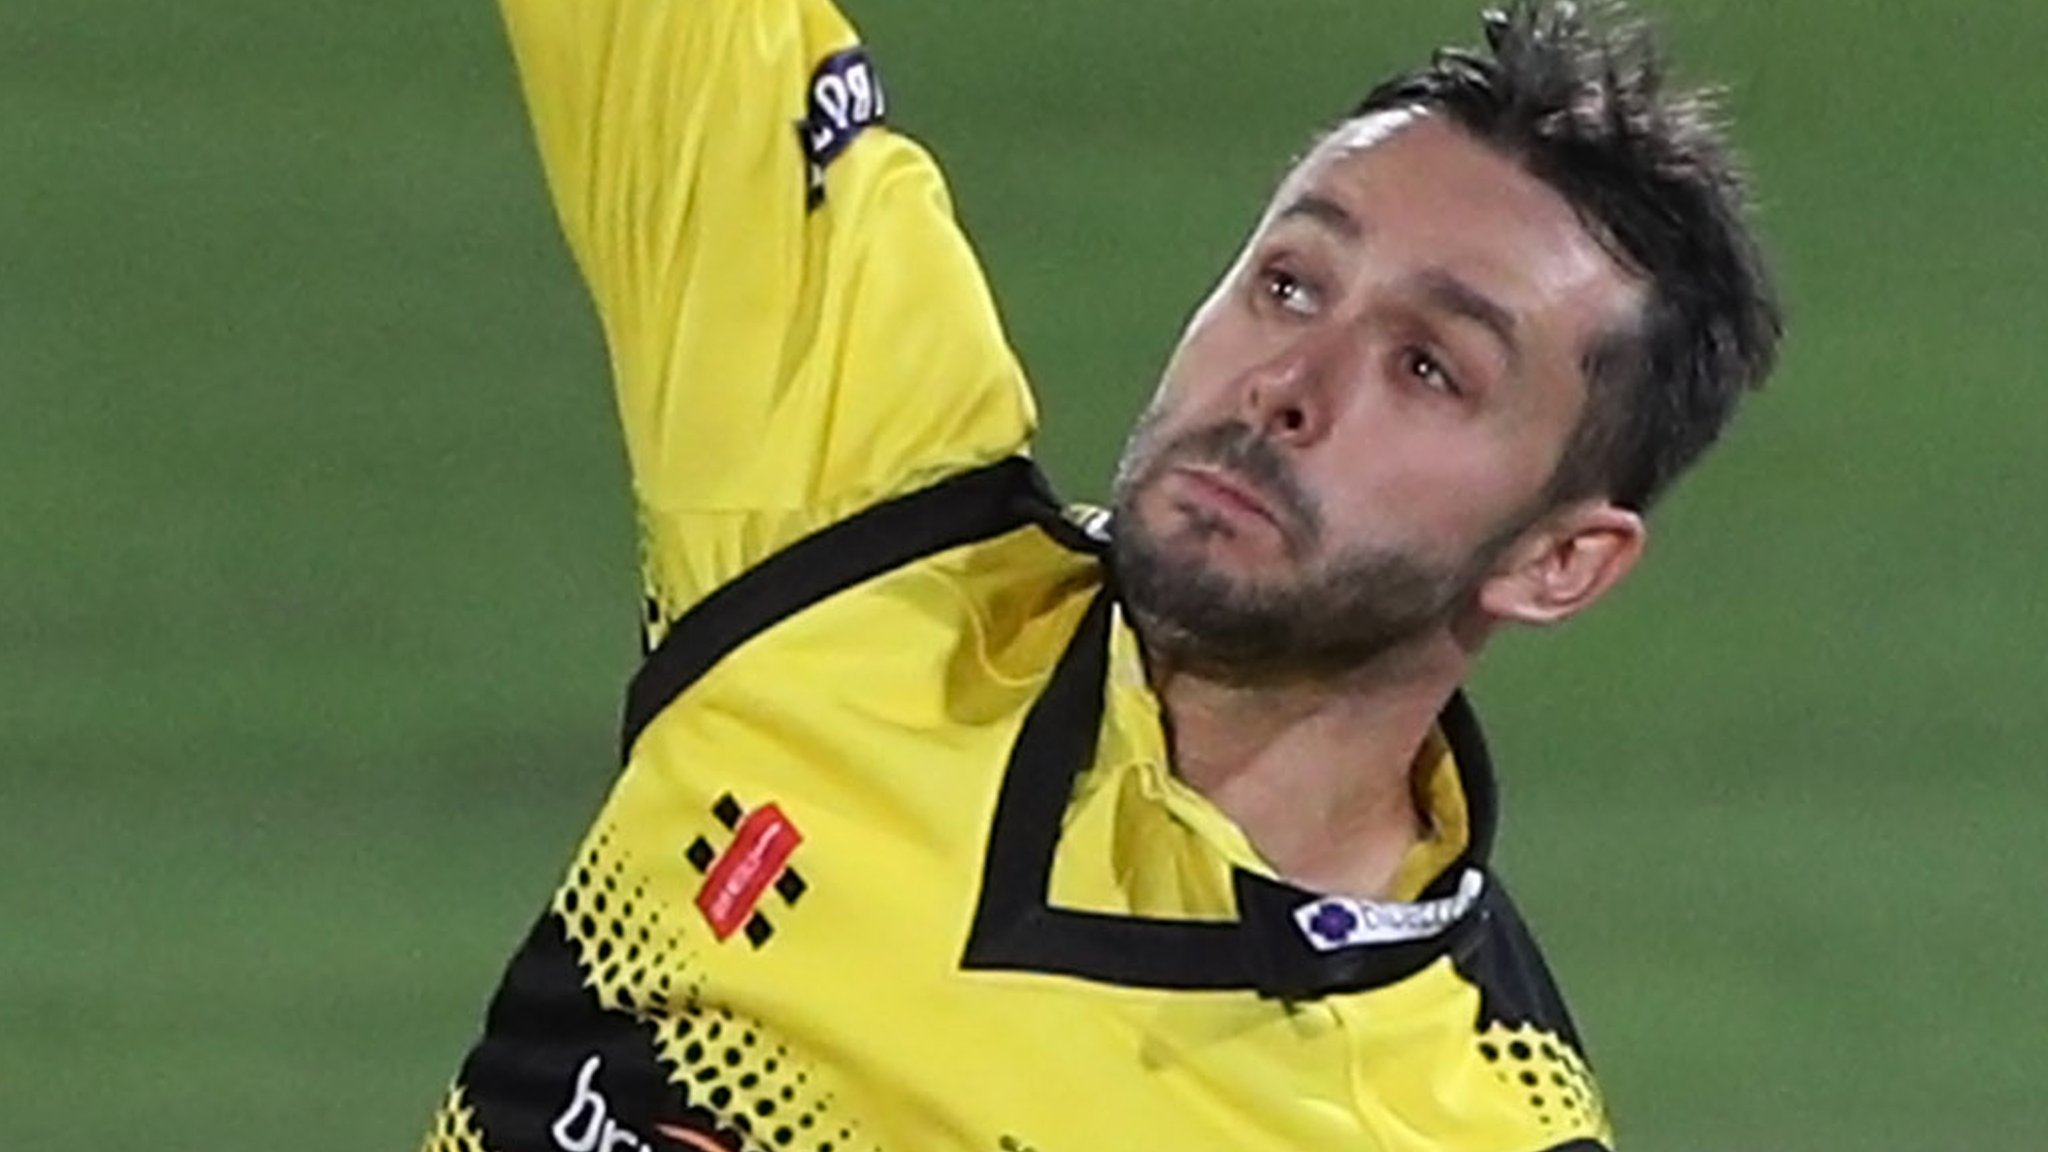 Jack Taylor: Gloucestershire all-rounder switches to leg-spin after bans